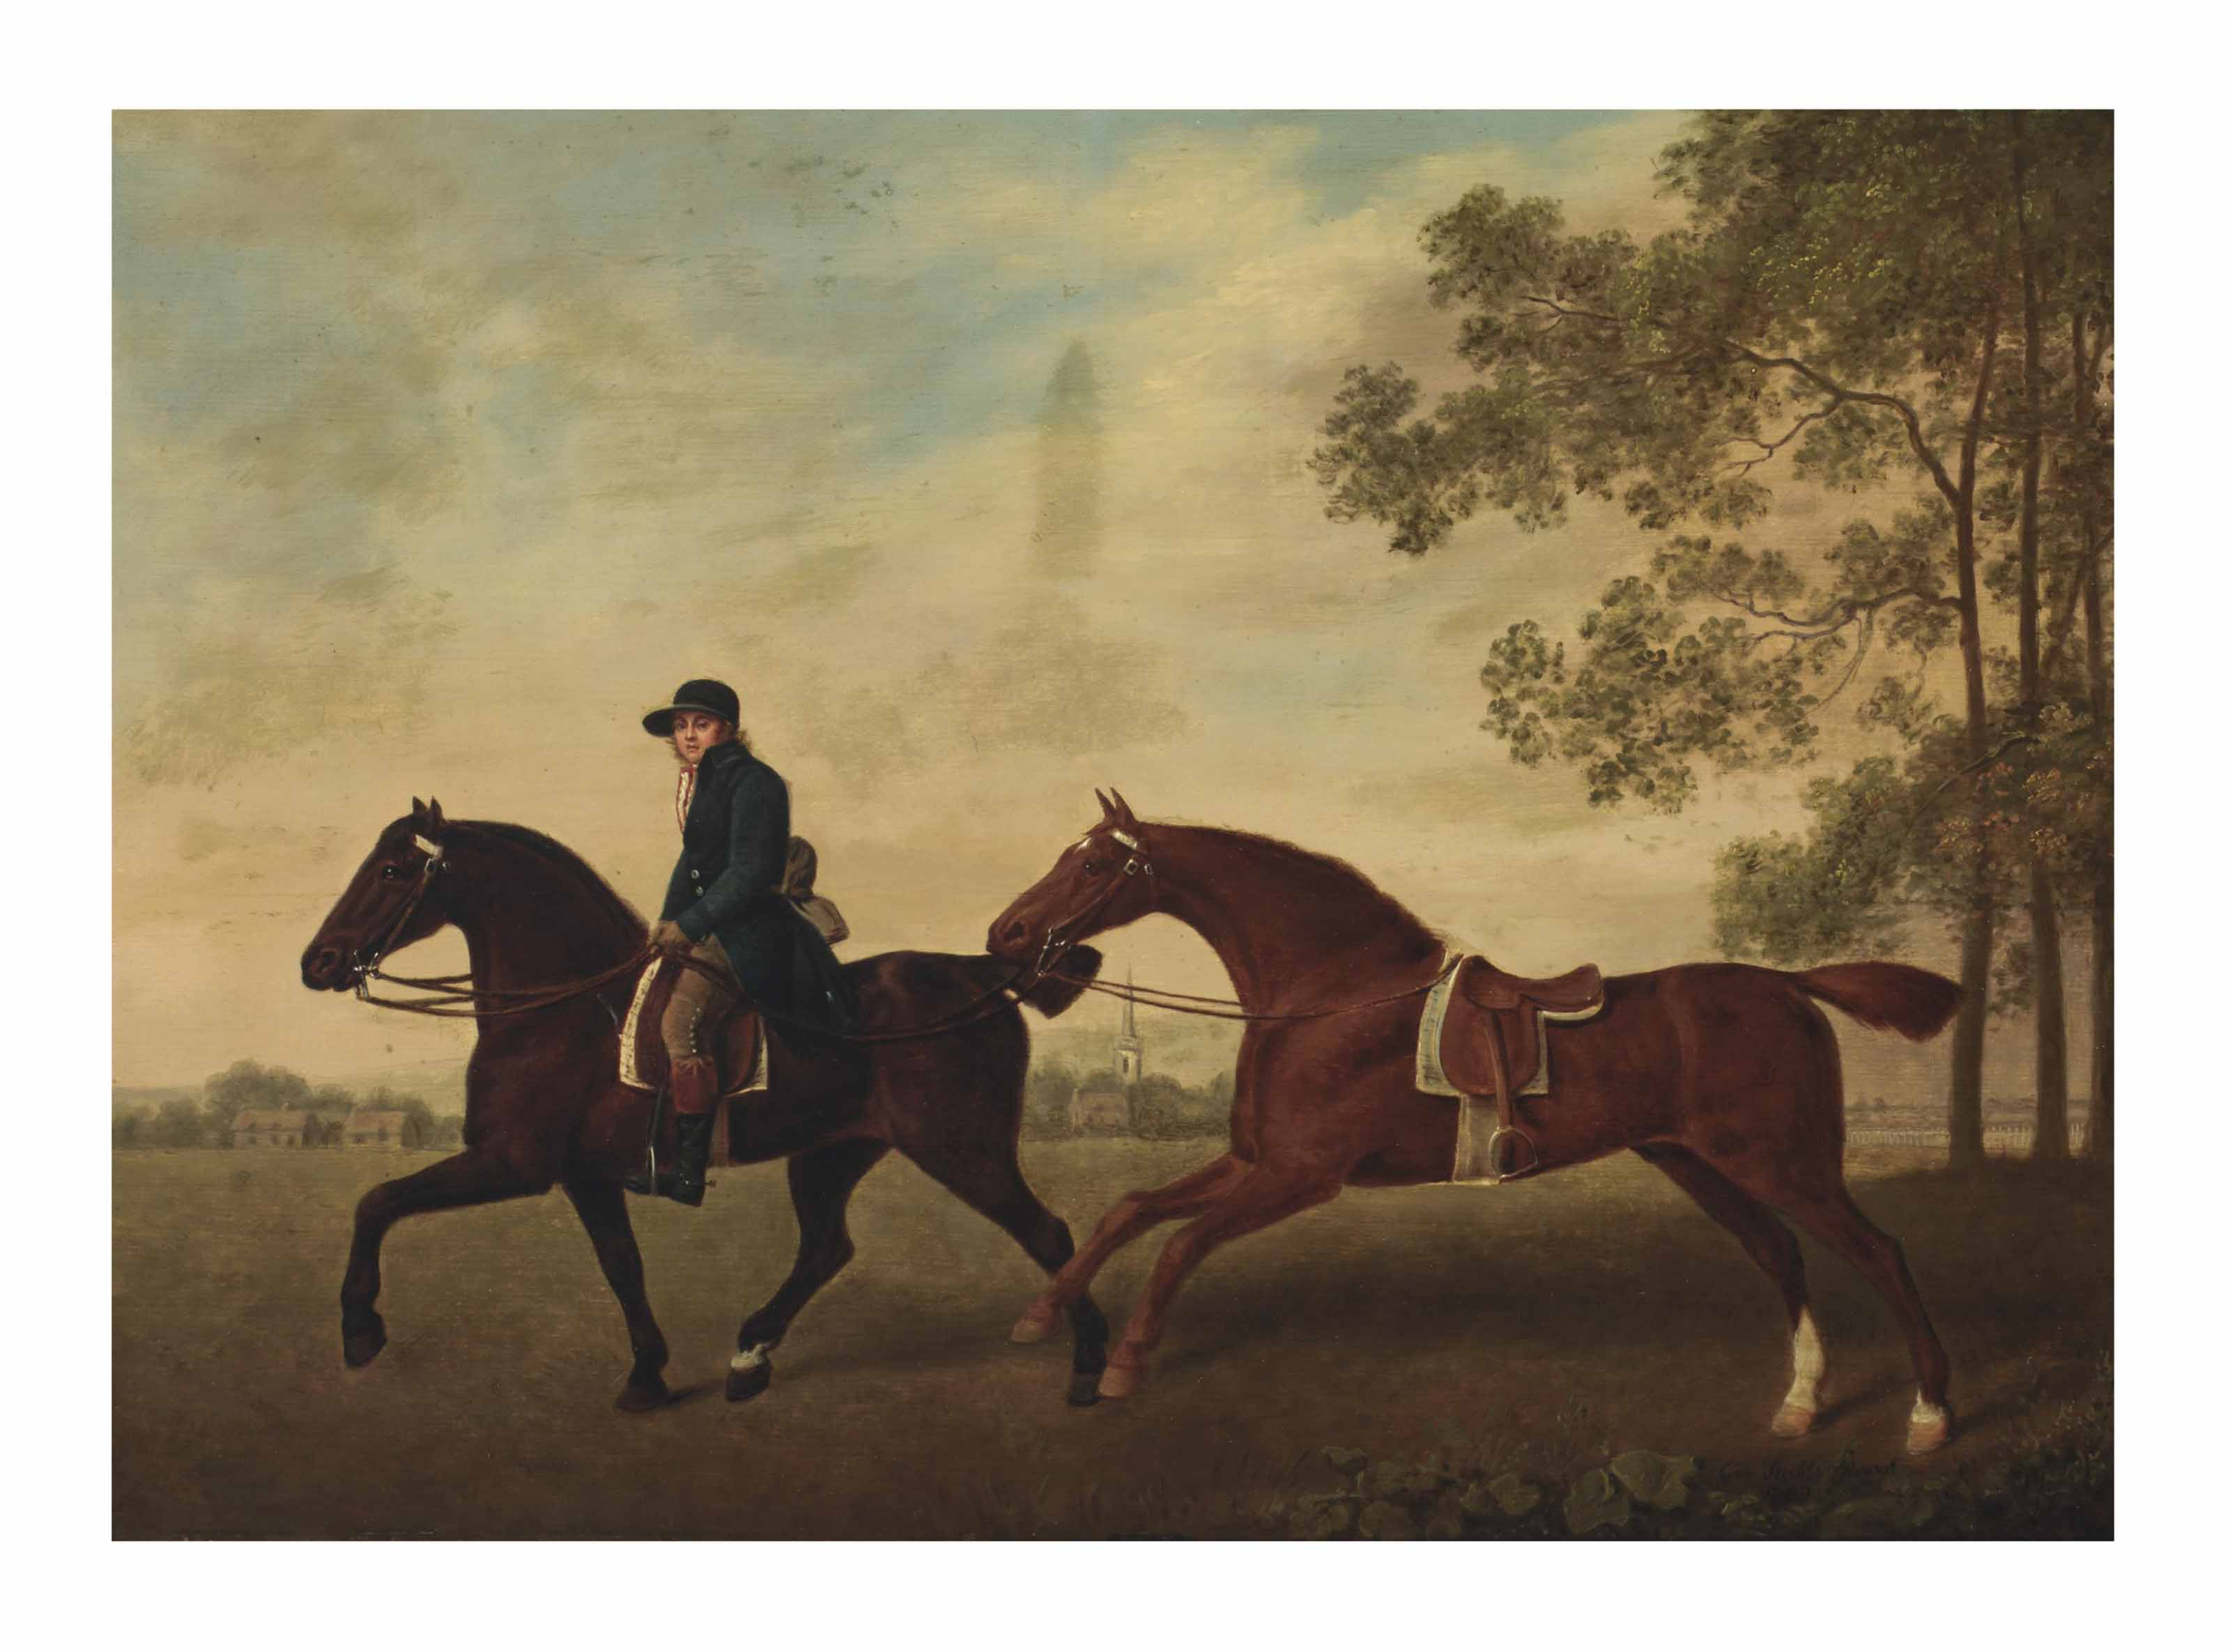 Two saddled horses, one ridden by a groom